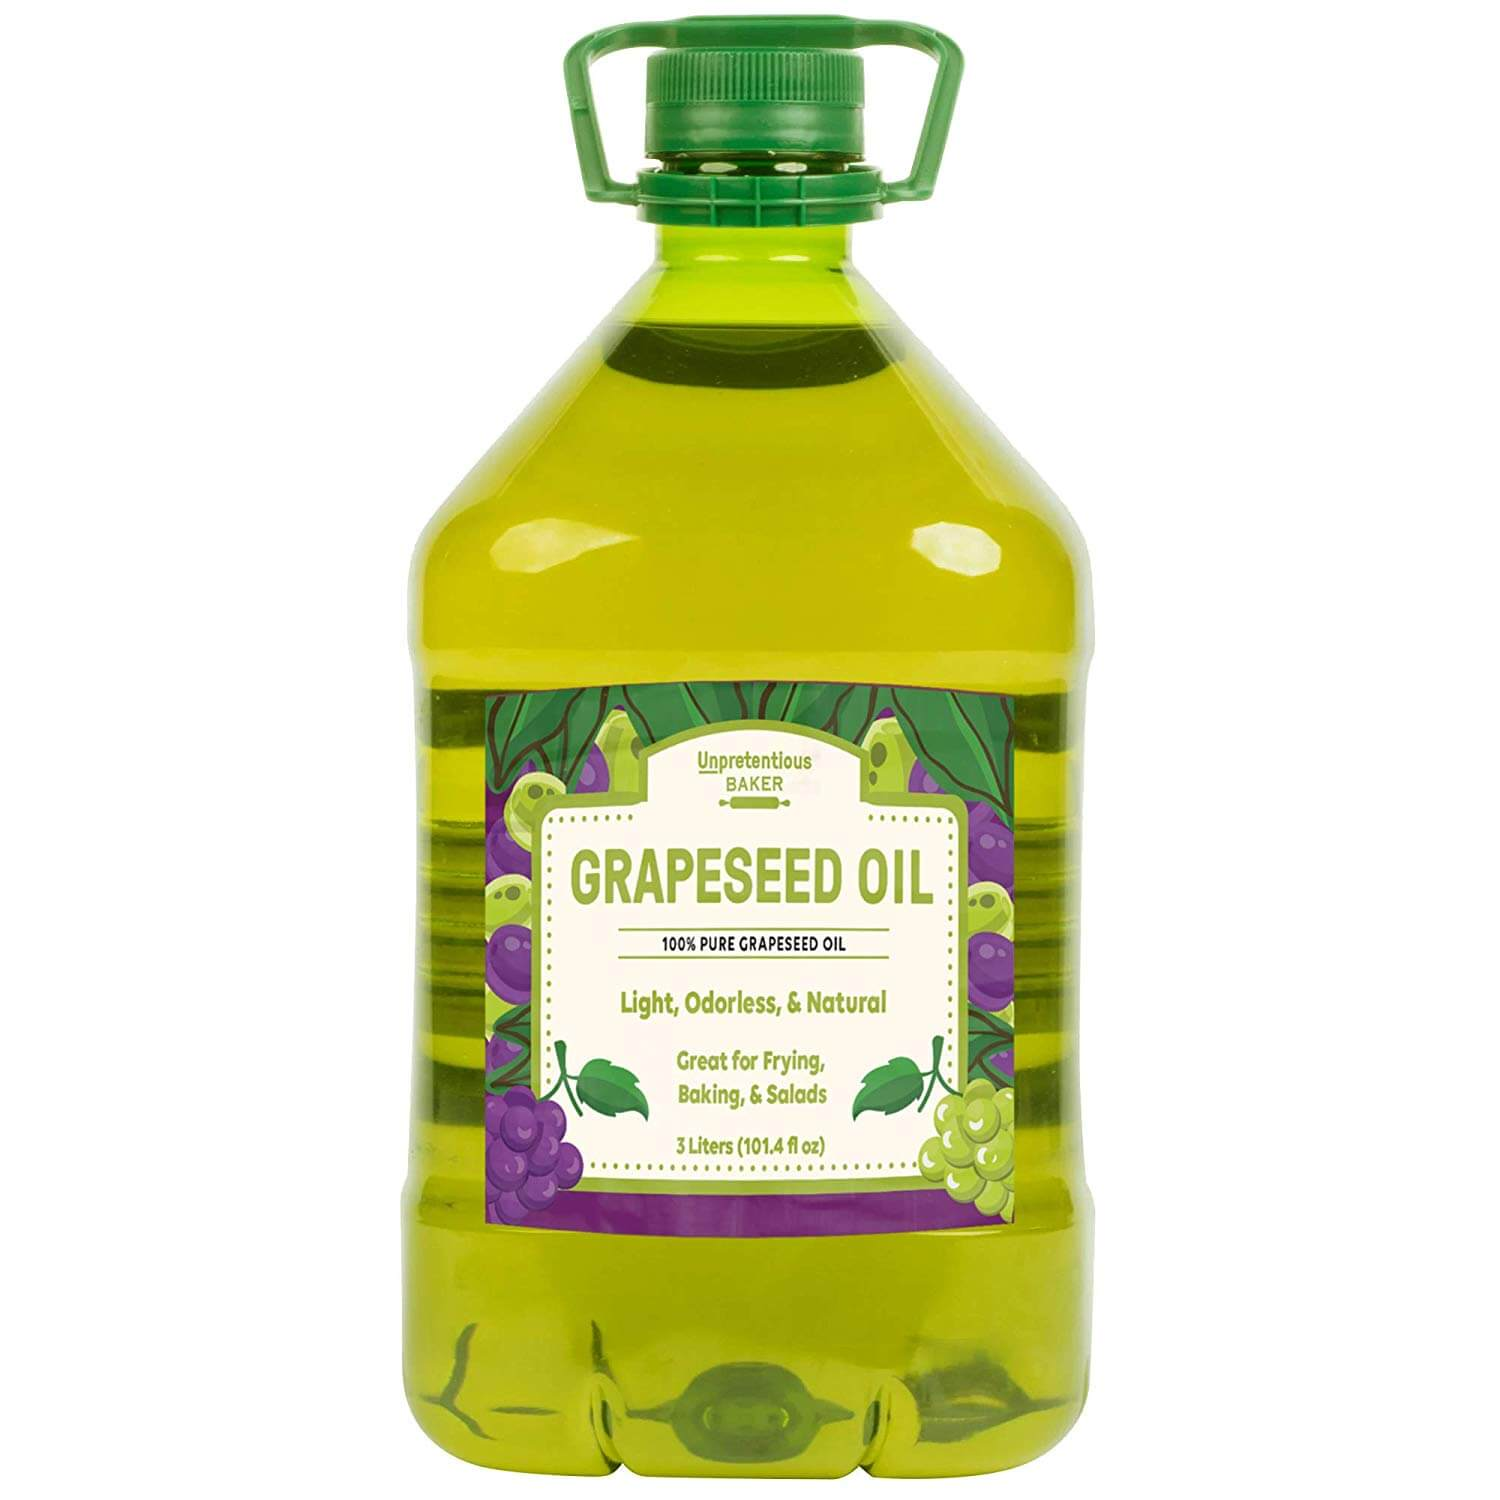 Unpretentious Baker Grapeseed Oil